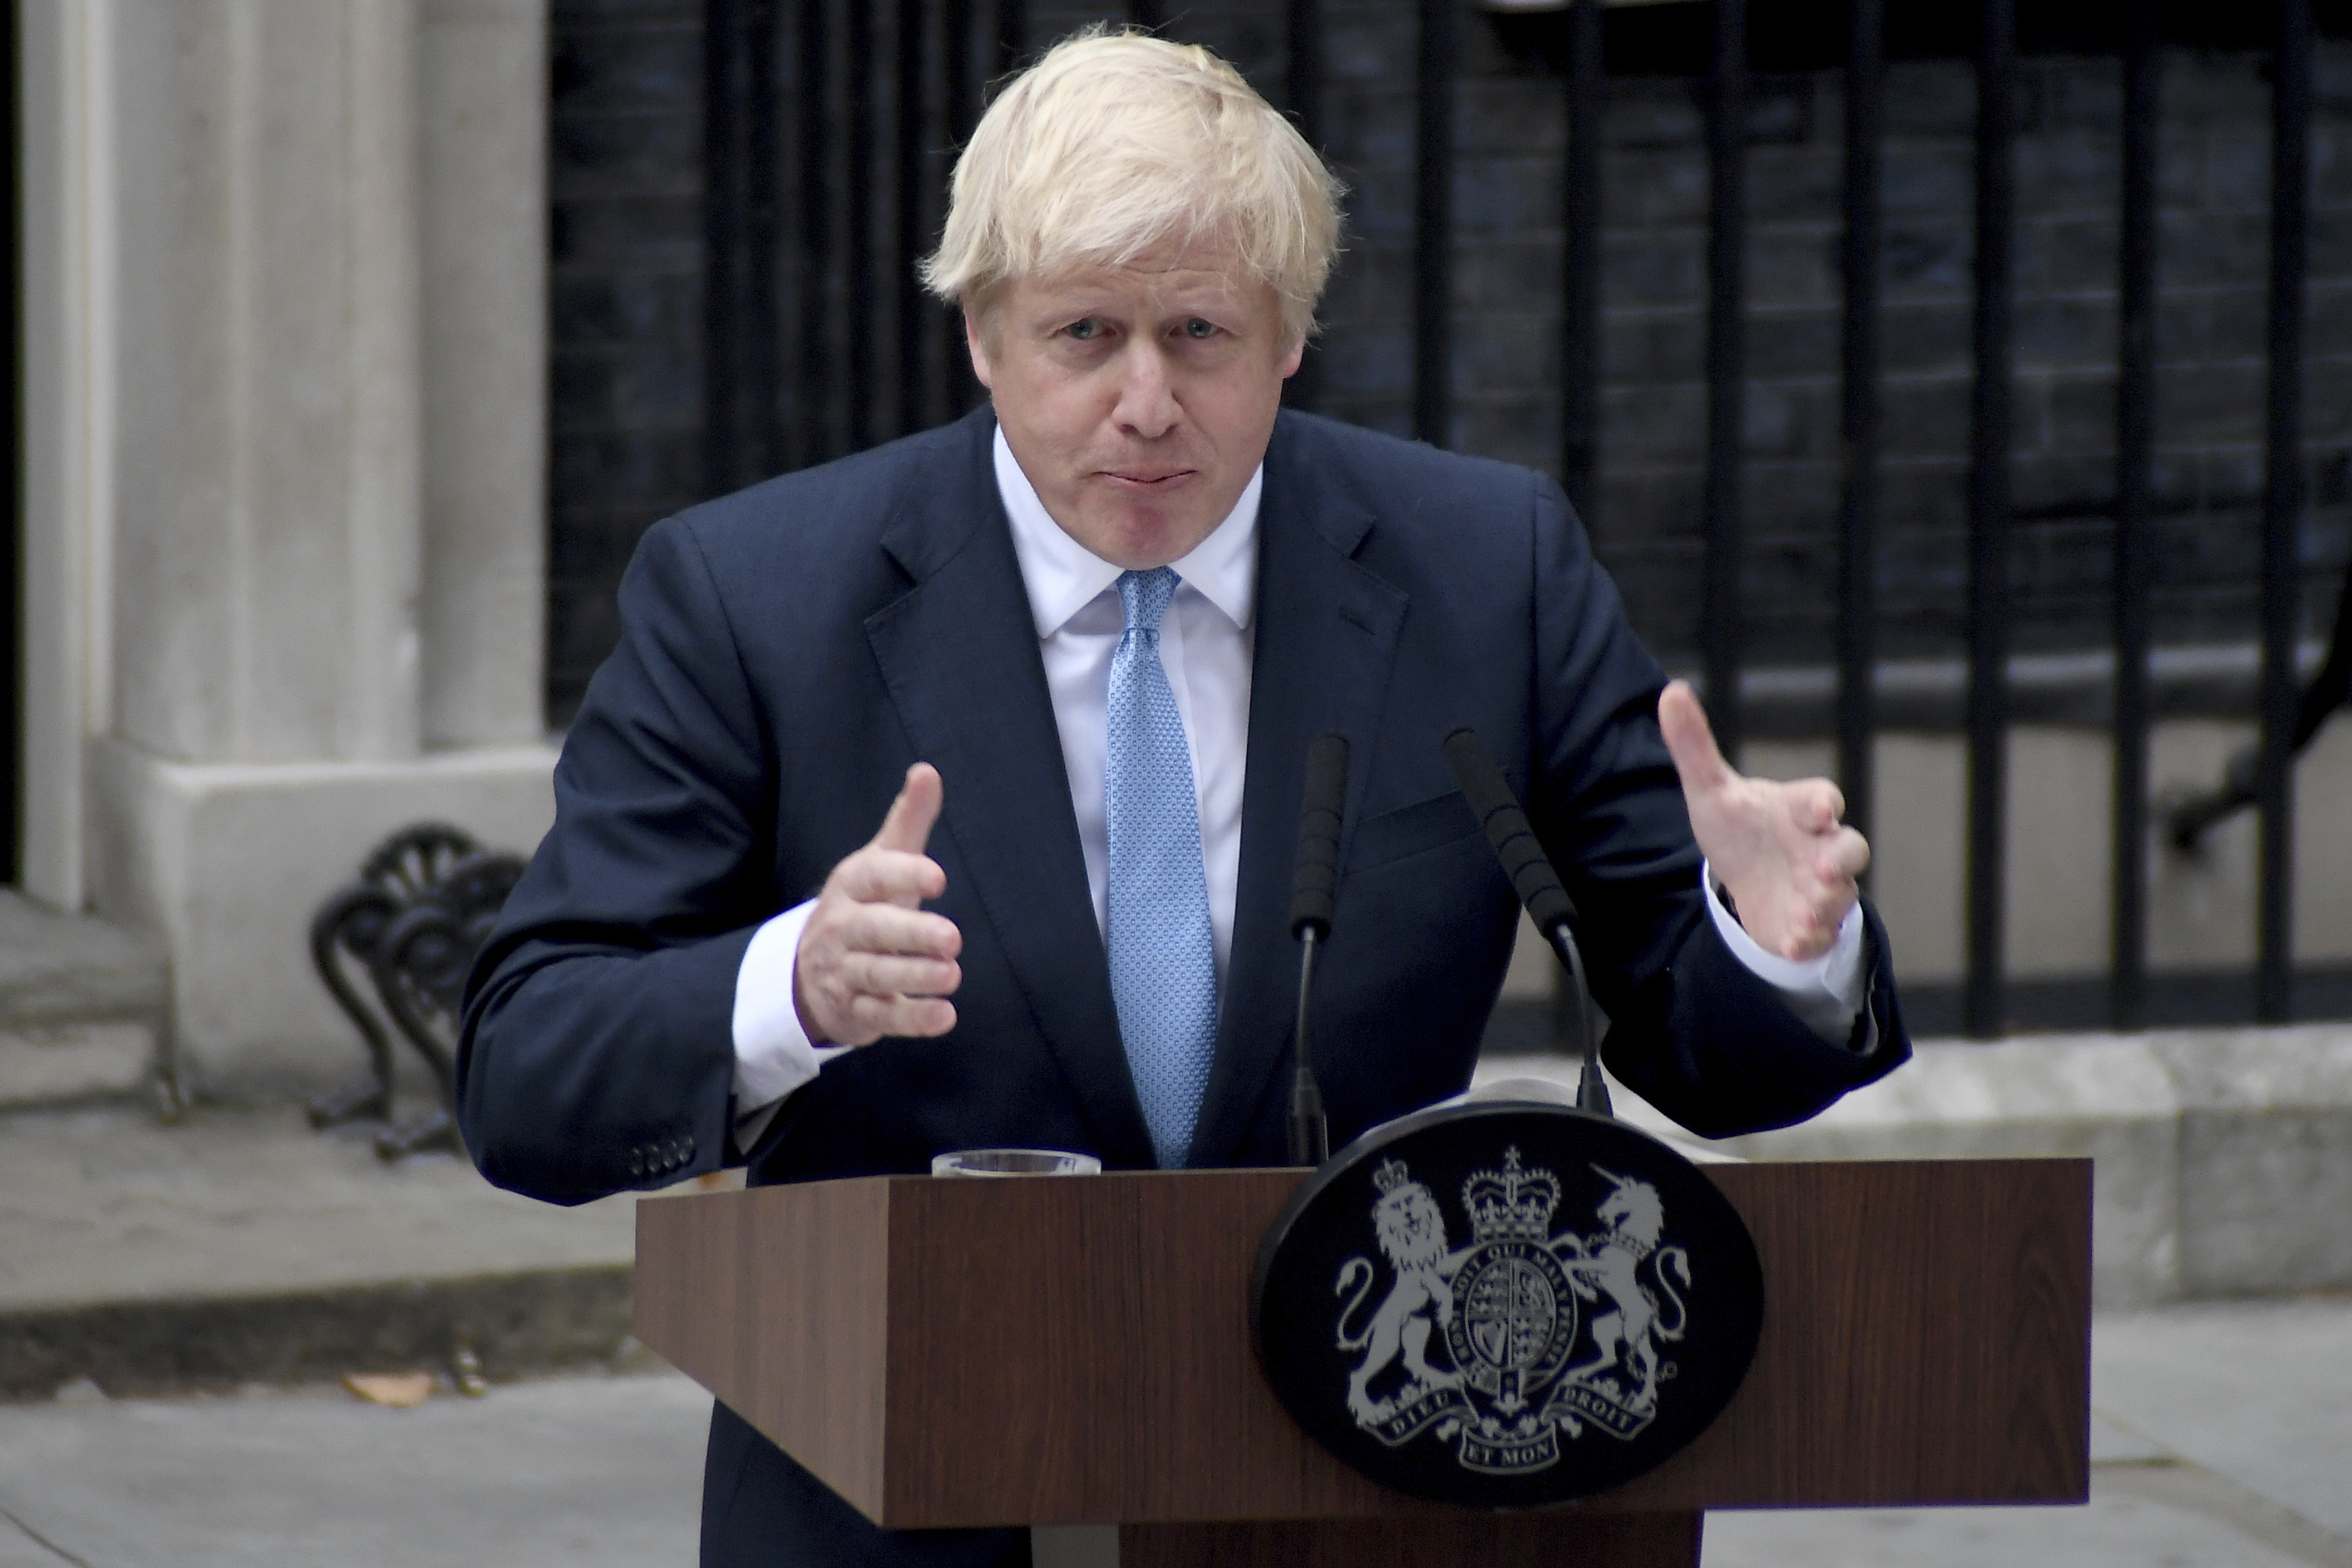 Britain's Prime Minister Boris Johnson speaks to the media outside 10 Downing Street in London, Monday, Sept. 2, 2019. Johnson says he doesn't want an election amid the Brexit crisis and issued a rallying cry to lawmakers to back him in securing a Brexit deal. (AP Photo/Alberto Pezzali)